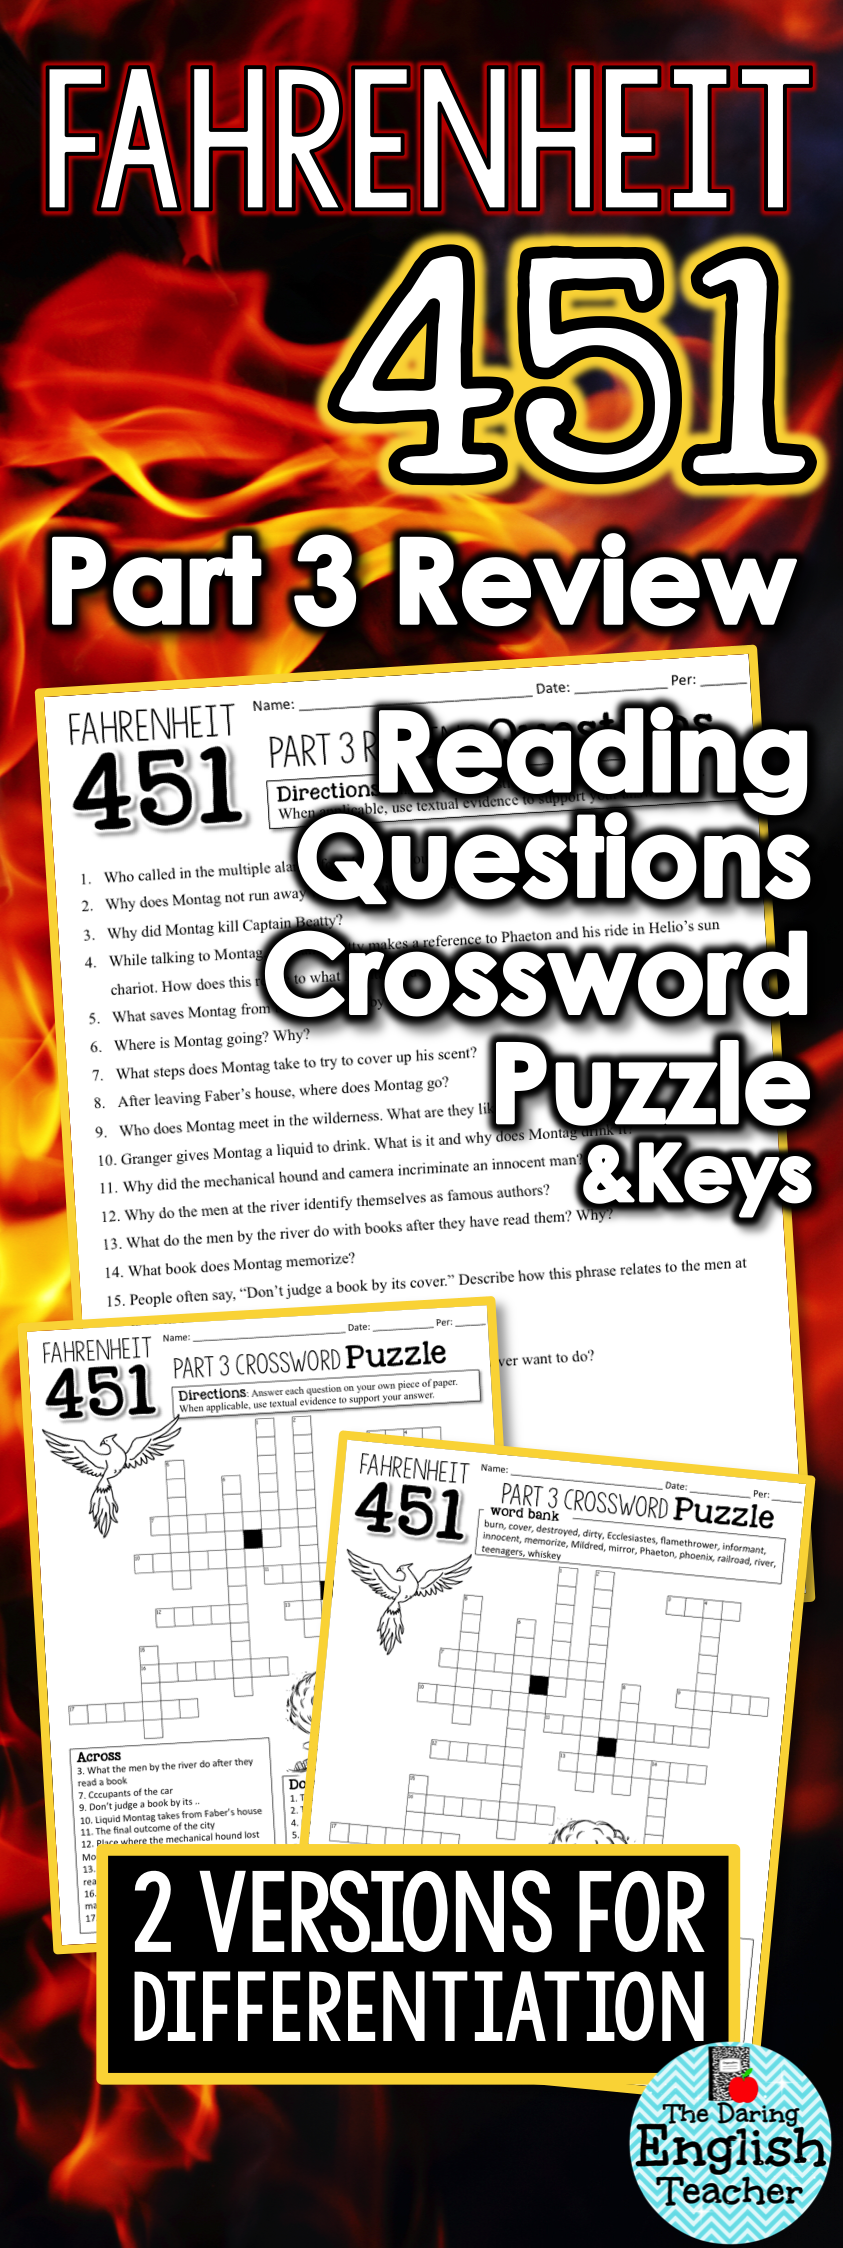 Fahrenheit 451 part 3 study guide questions and comprehension fahrenheit 451 part 3 study guide questions and comprehension crossword puzzle biocorpaavc Gallery